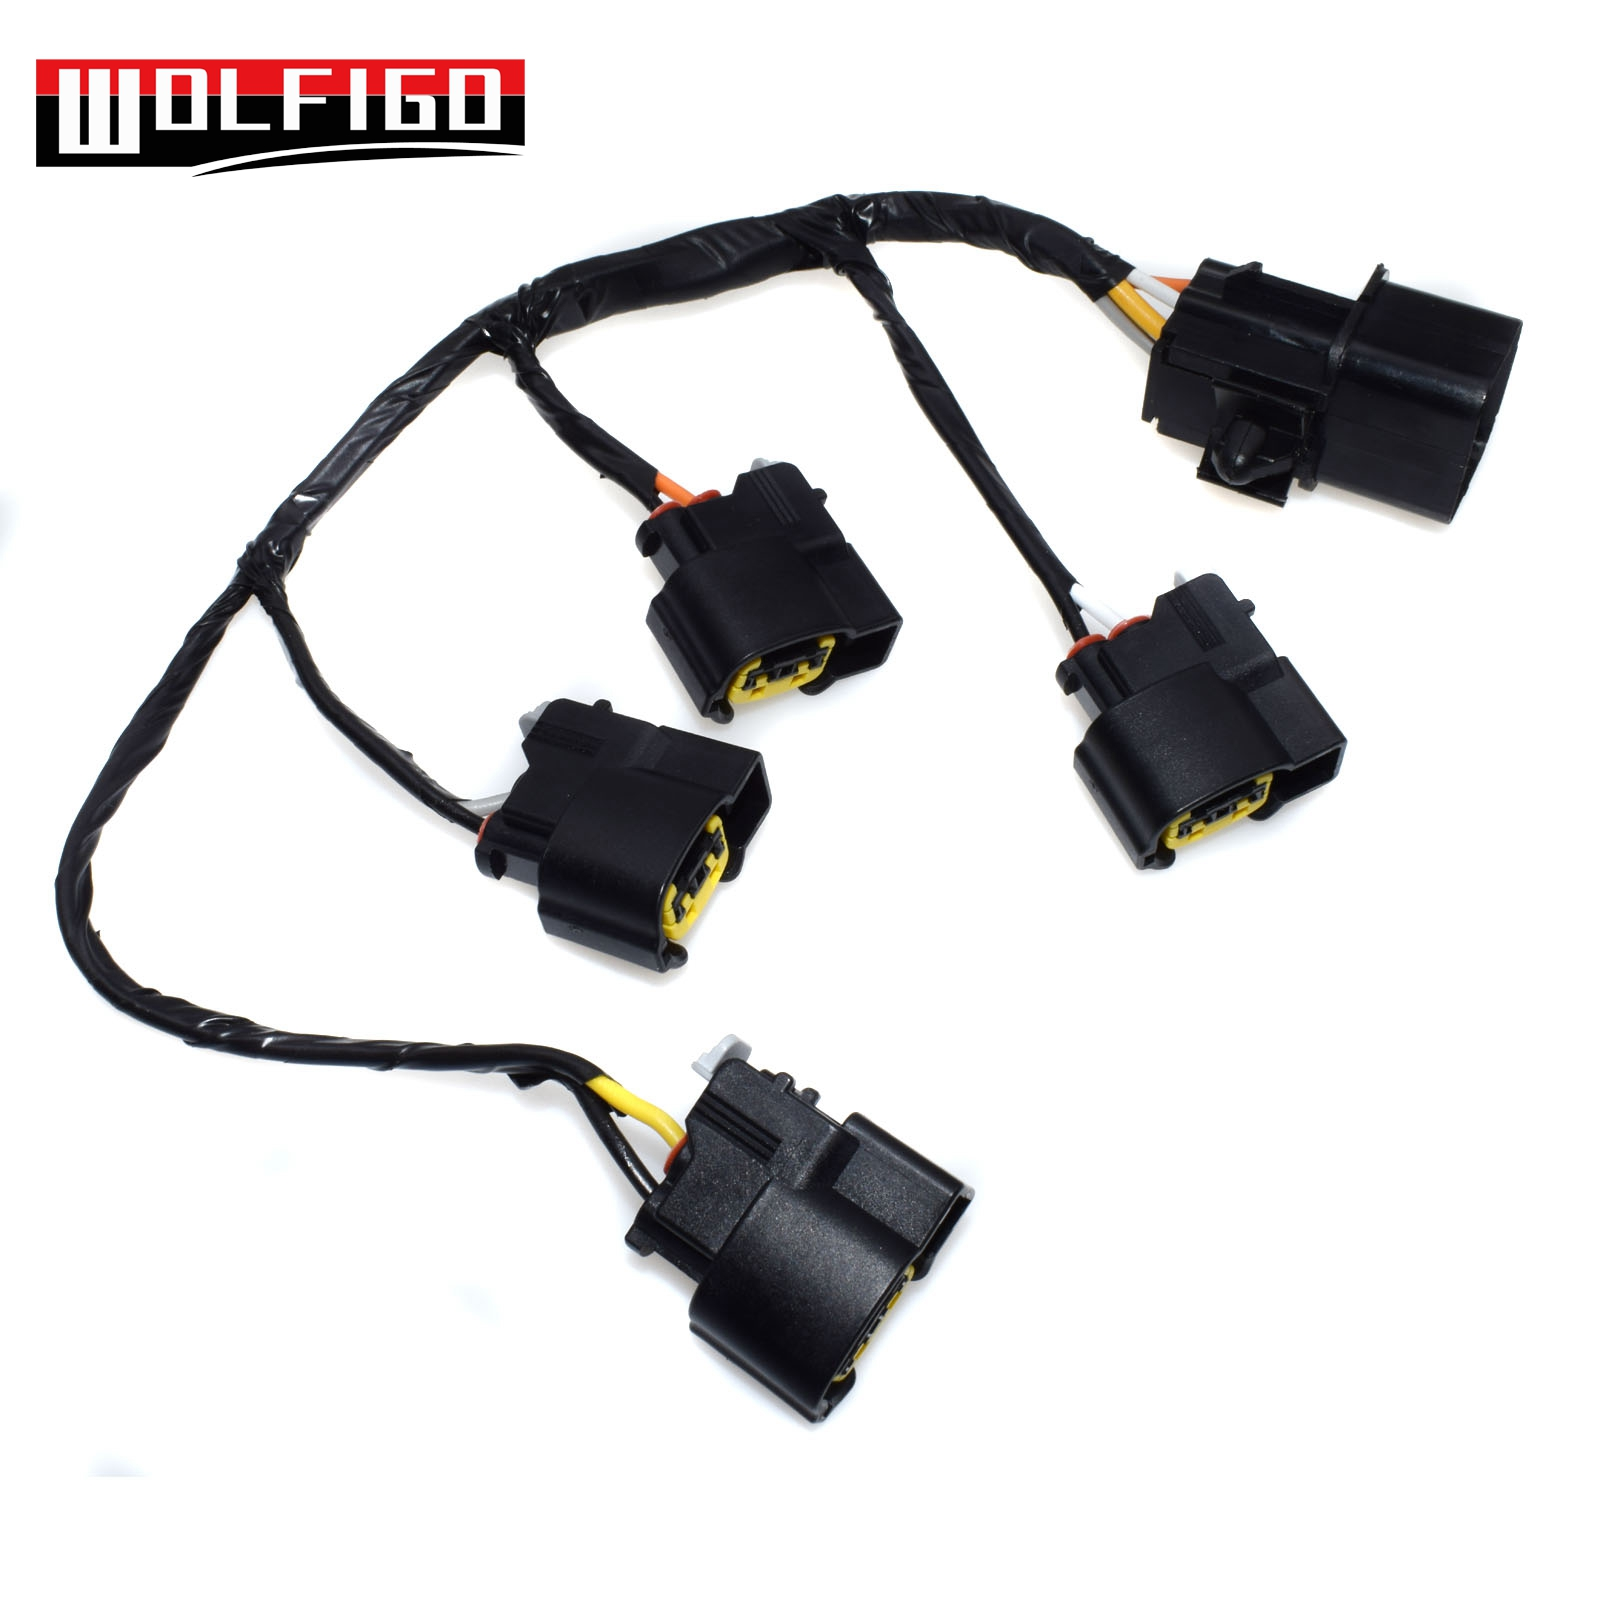 [DIAGRAM_1JK]  WOLFIGO New Ignition Coil Wire Harness for Hyundai Kia Veloster Rio 1.6L  27350 2B000,27350 2B000,273502B000|Ignition Coil| - AliExpress | Ignition Coil Wiring Harness |  | AliExpress